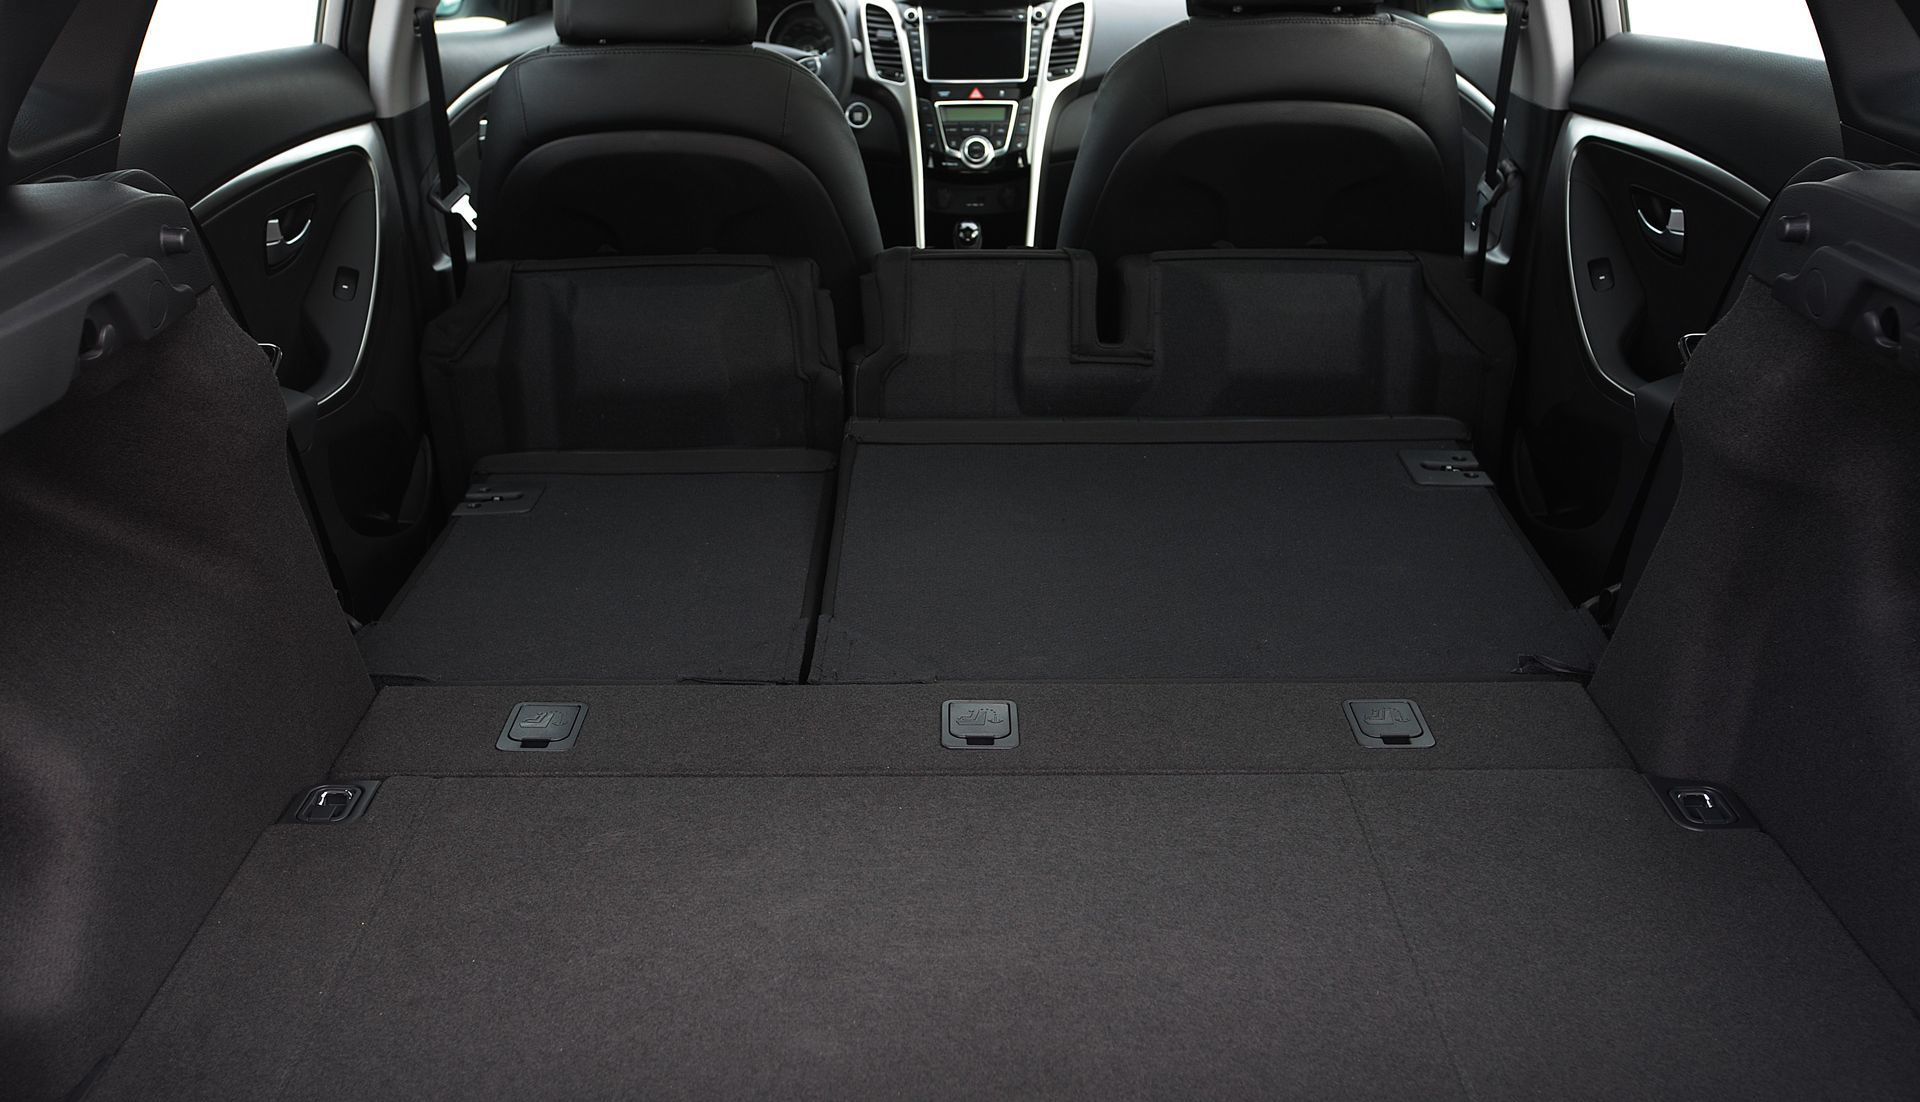 Hyundai Elantra GT Maximum Cargo Space